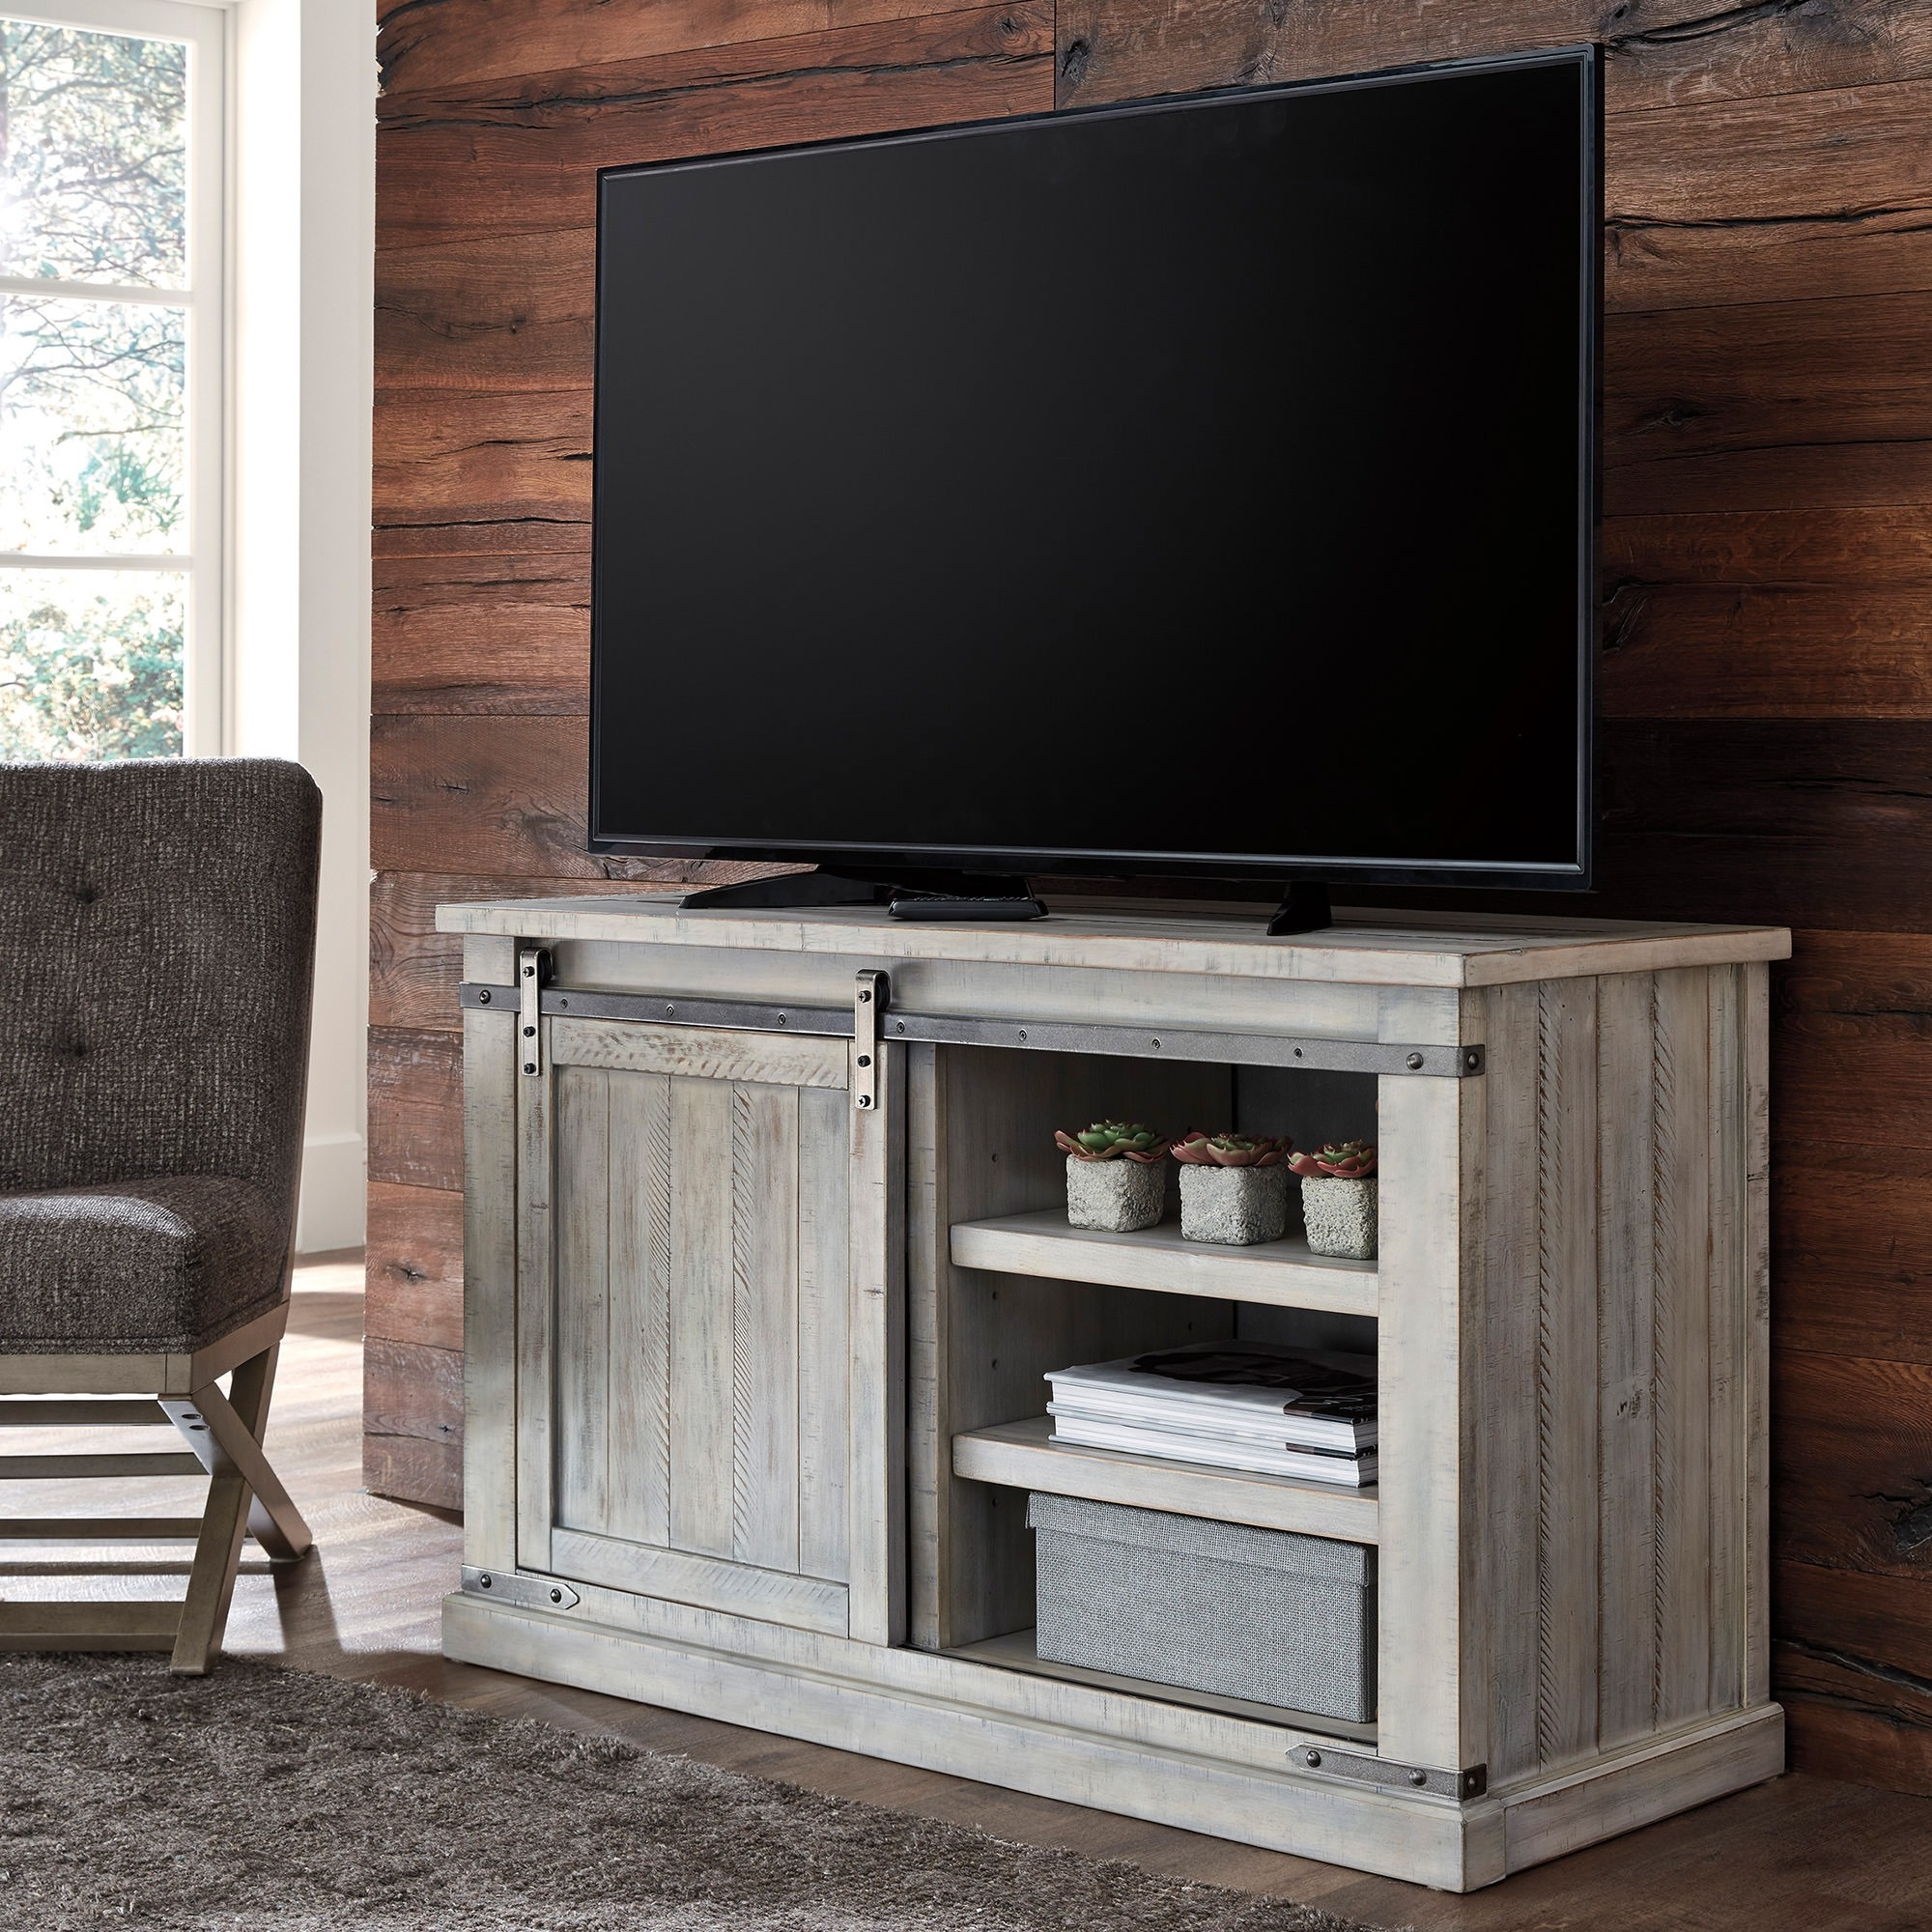 """Most Recently Released Carynhurst Medium 50 Inch Tv Stand – Bernie & Phyl's Inside Leonid Tv Stands For Tvs Up To 50"""" (View 14 of 25)"""